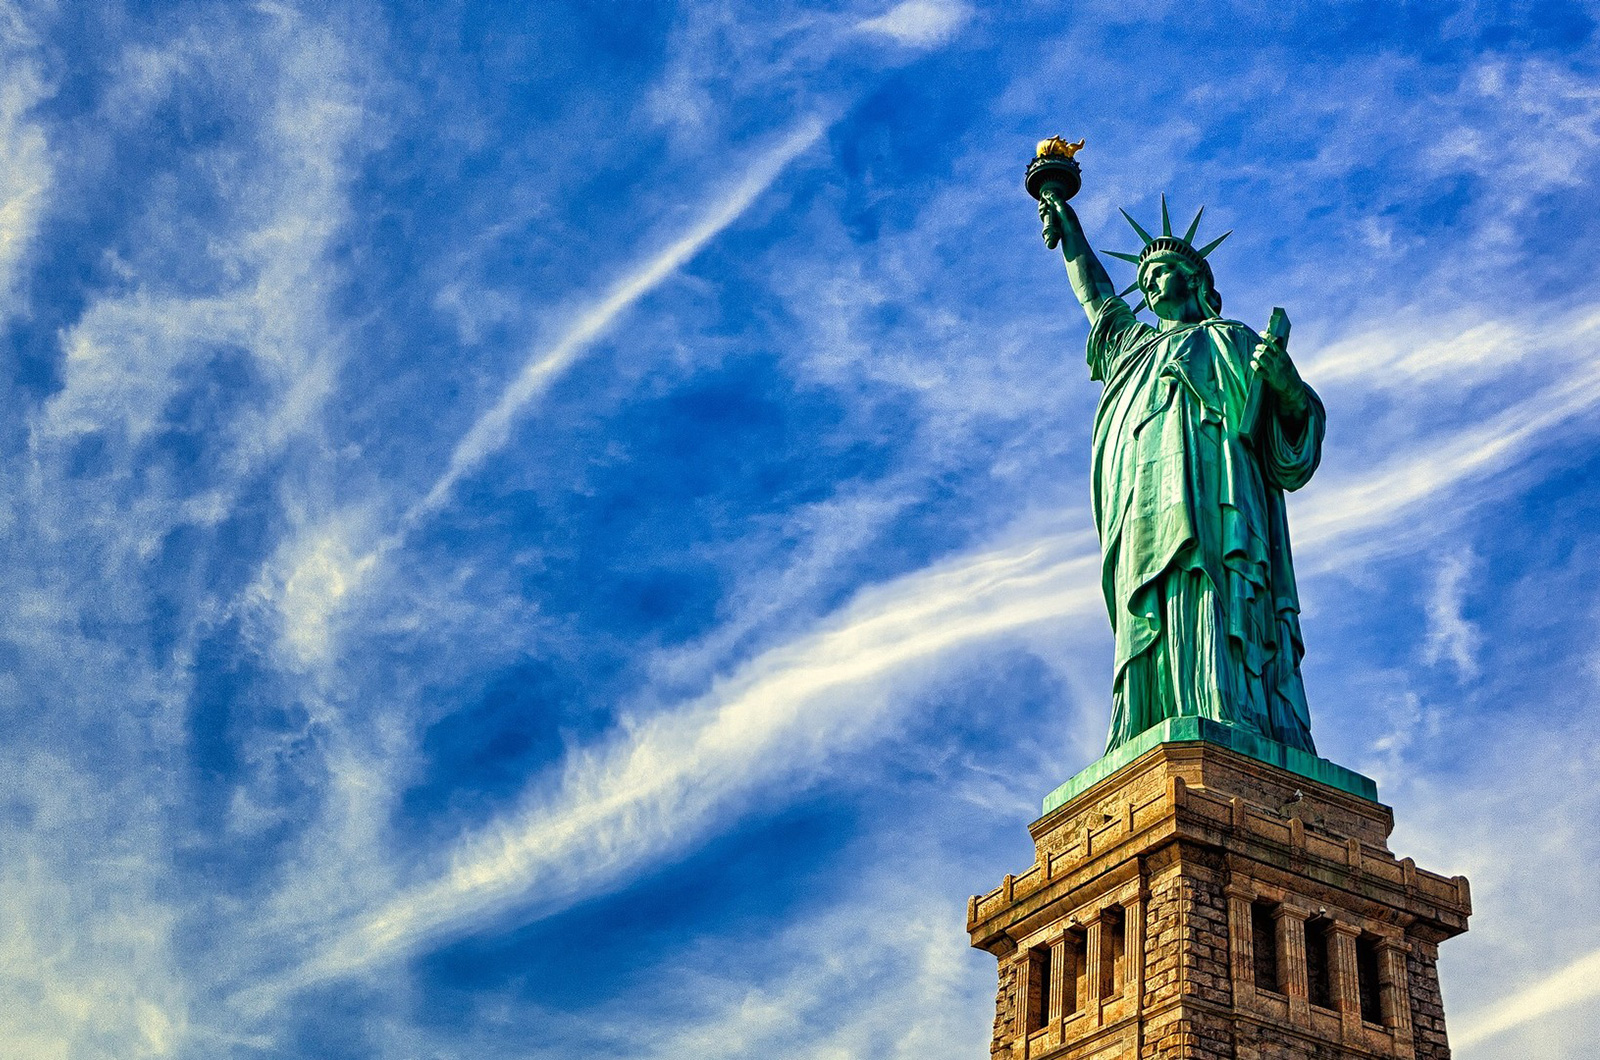 new-york-city-statue-of-liberty-main